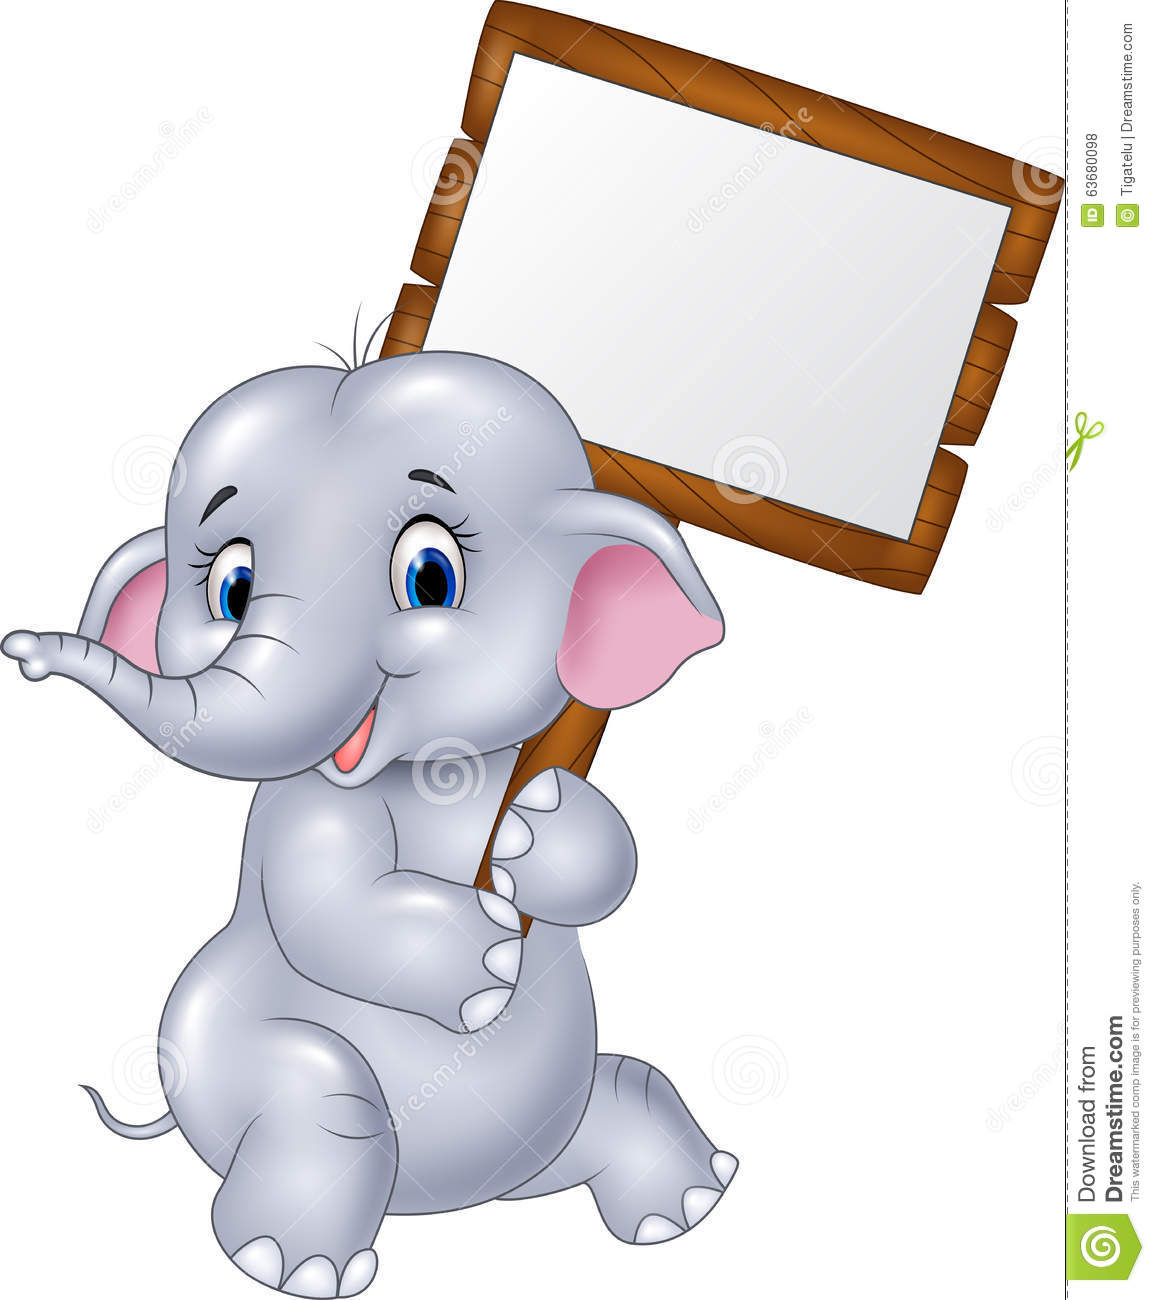 Cute Baby Elephant Holding Blank Sign Stock Vector - Image ...